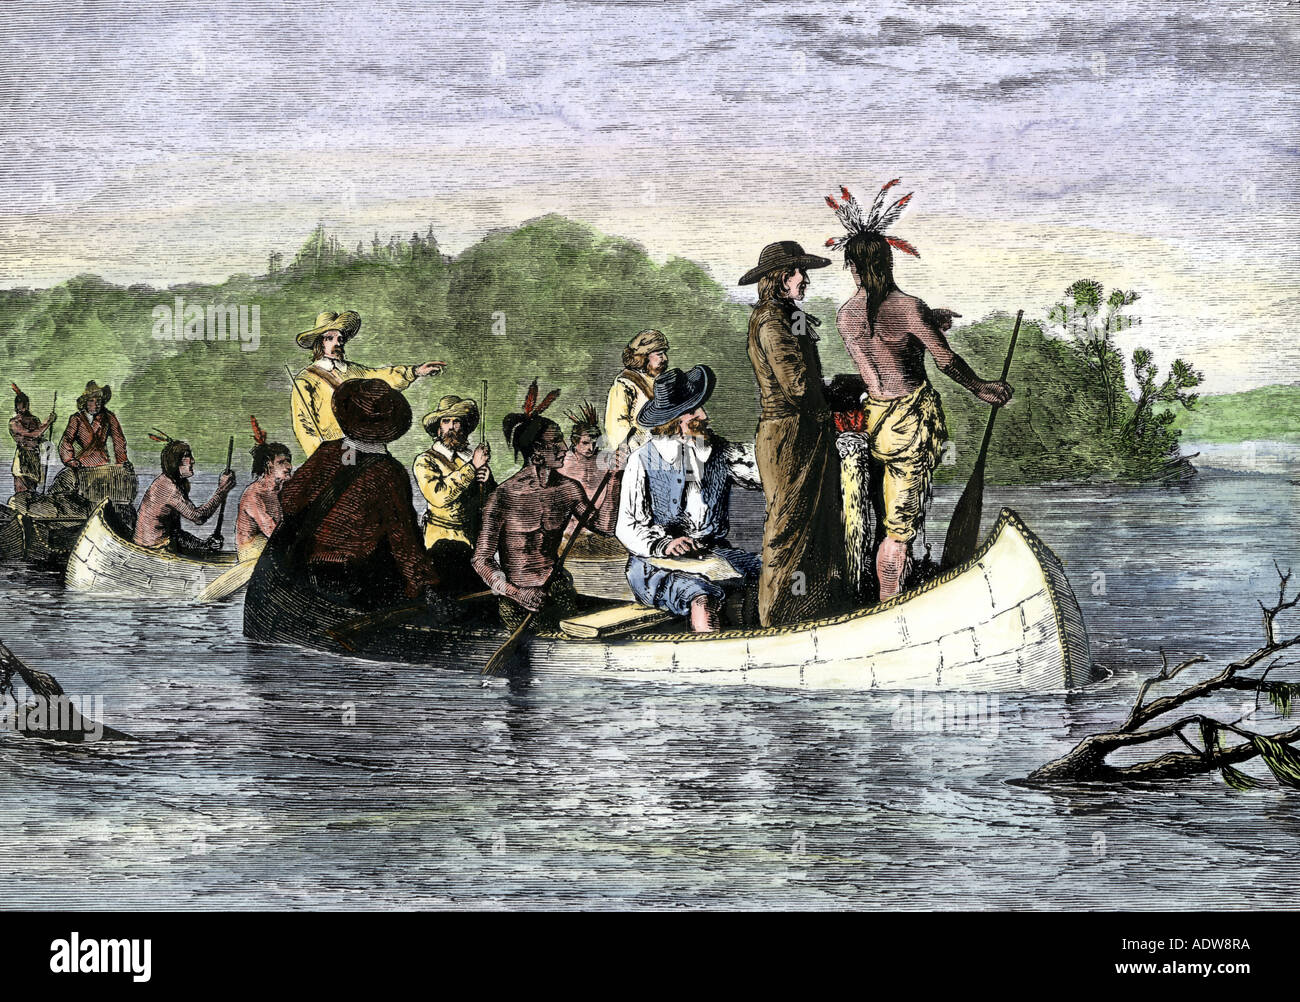 jacques marquette and louis joliet the first white men on the upper mississippi river 1673